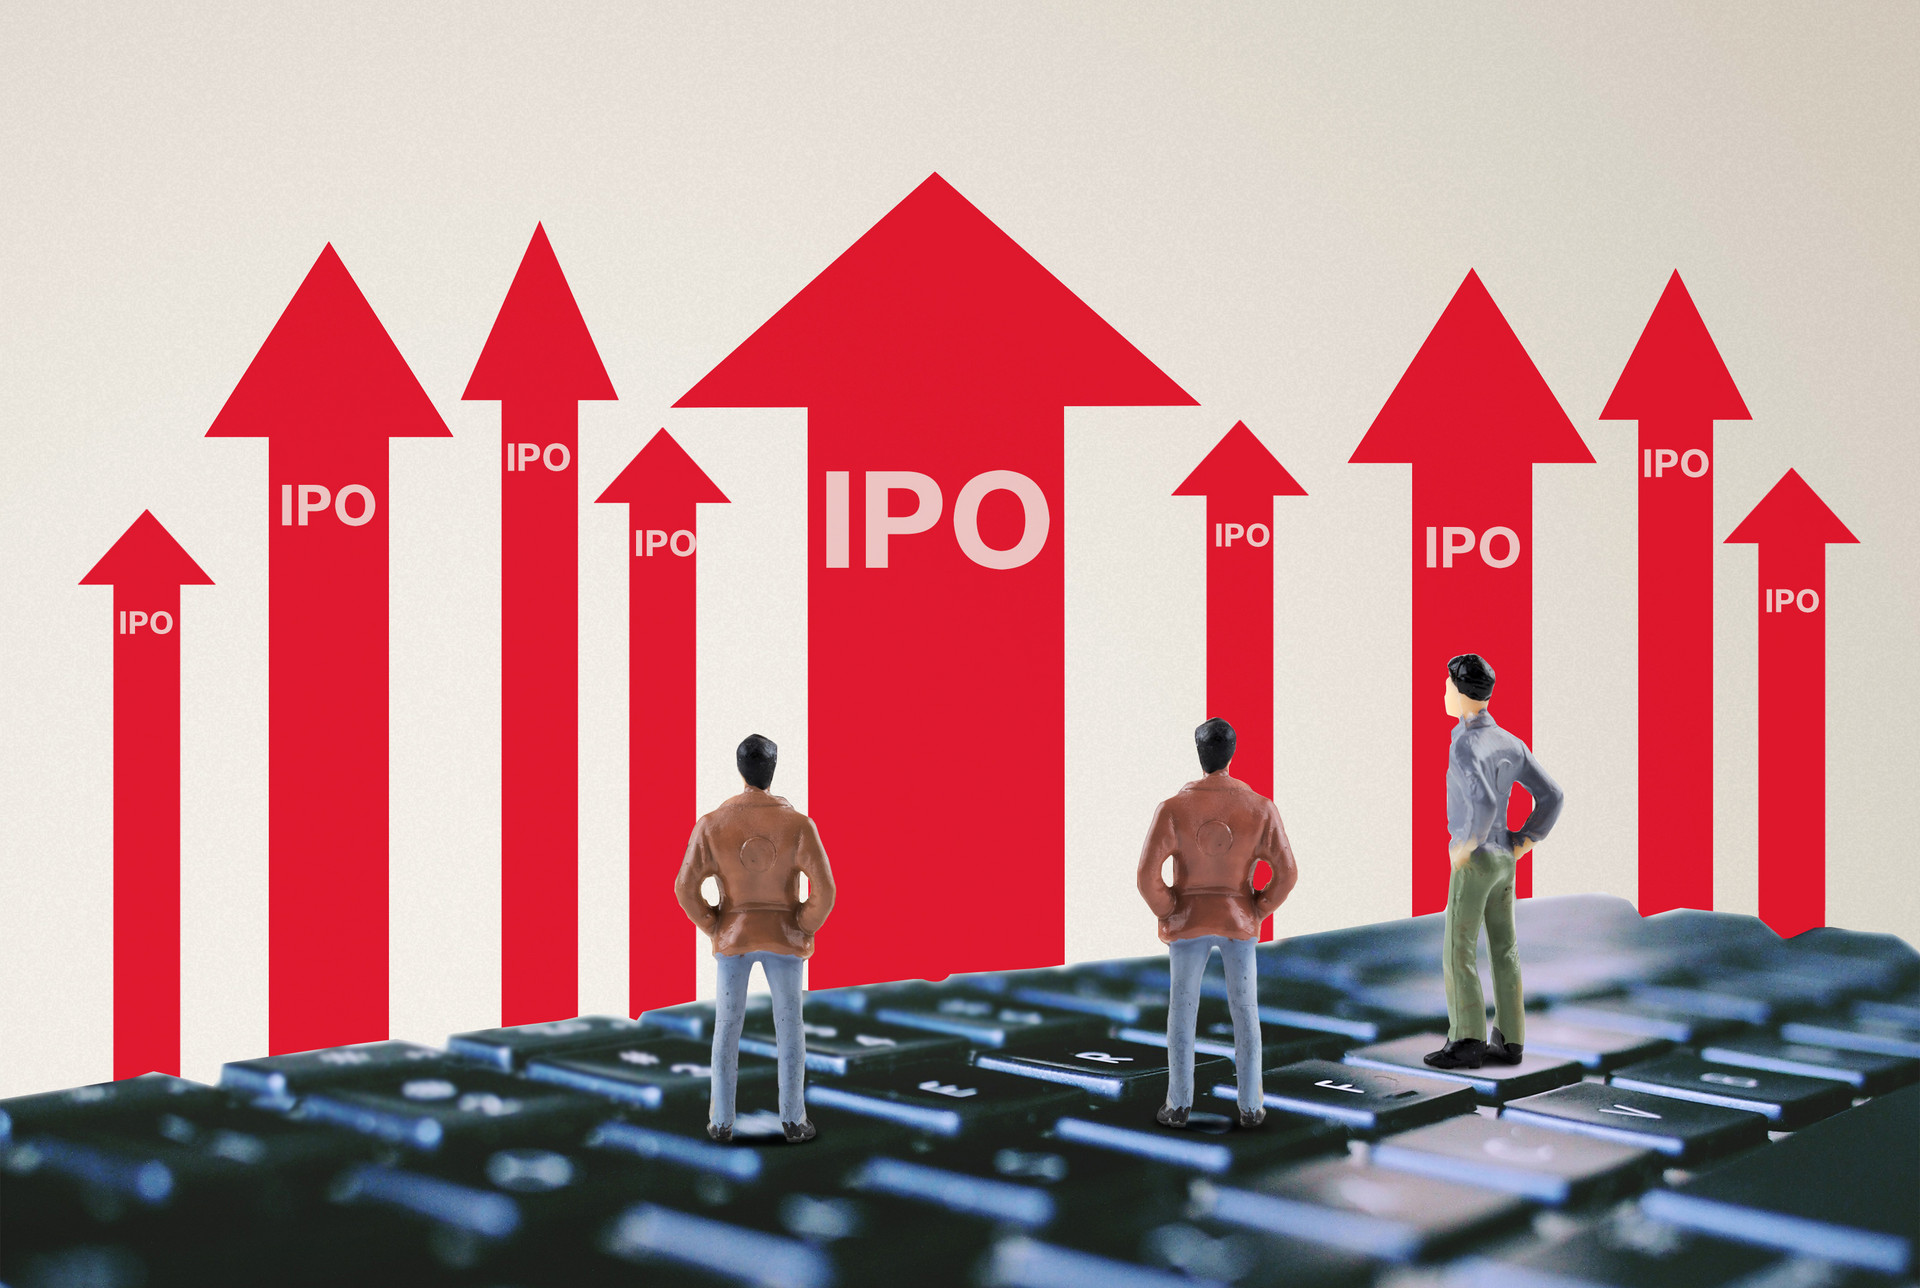 ____500767165_banner___ipo_________